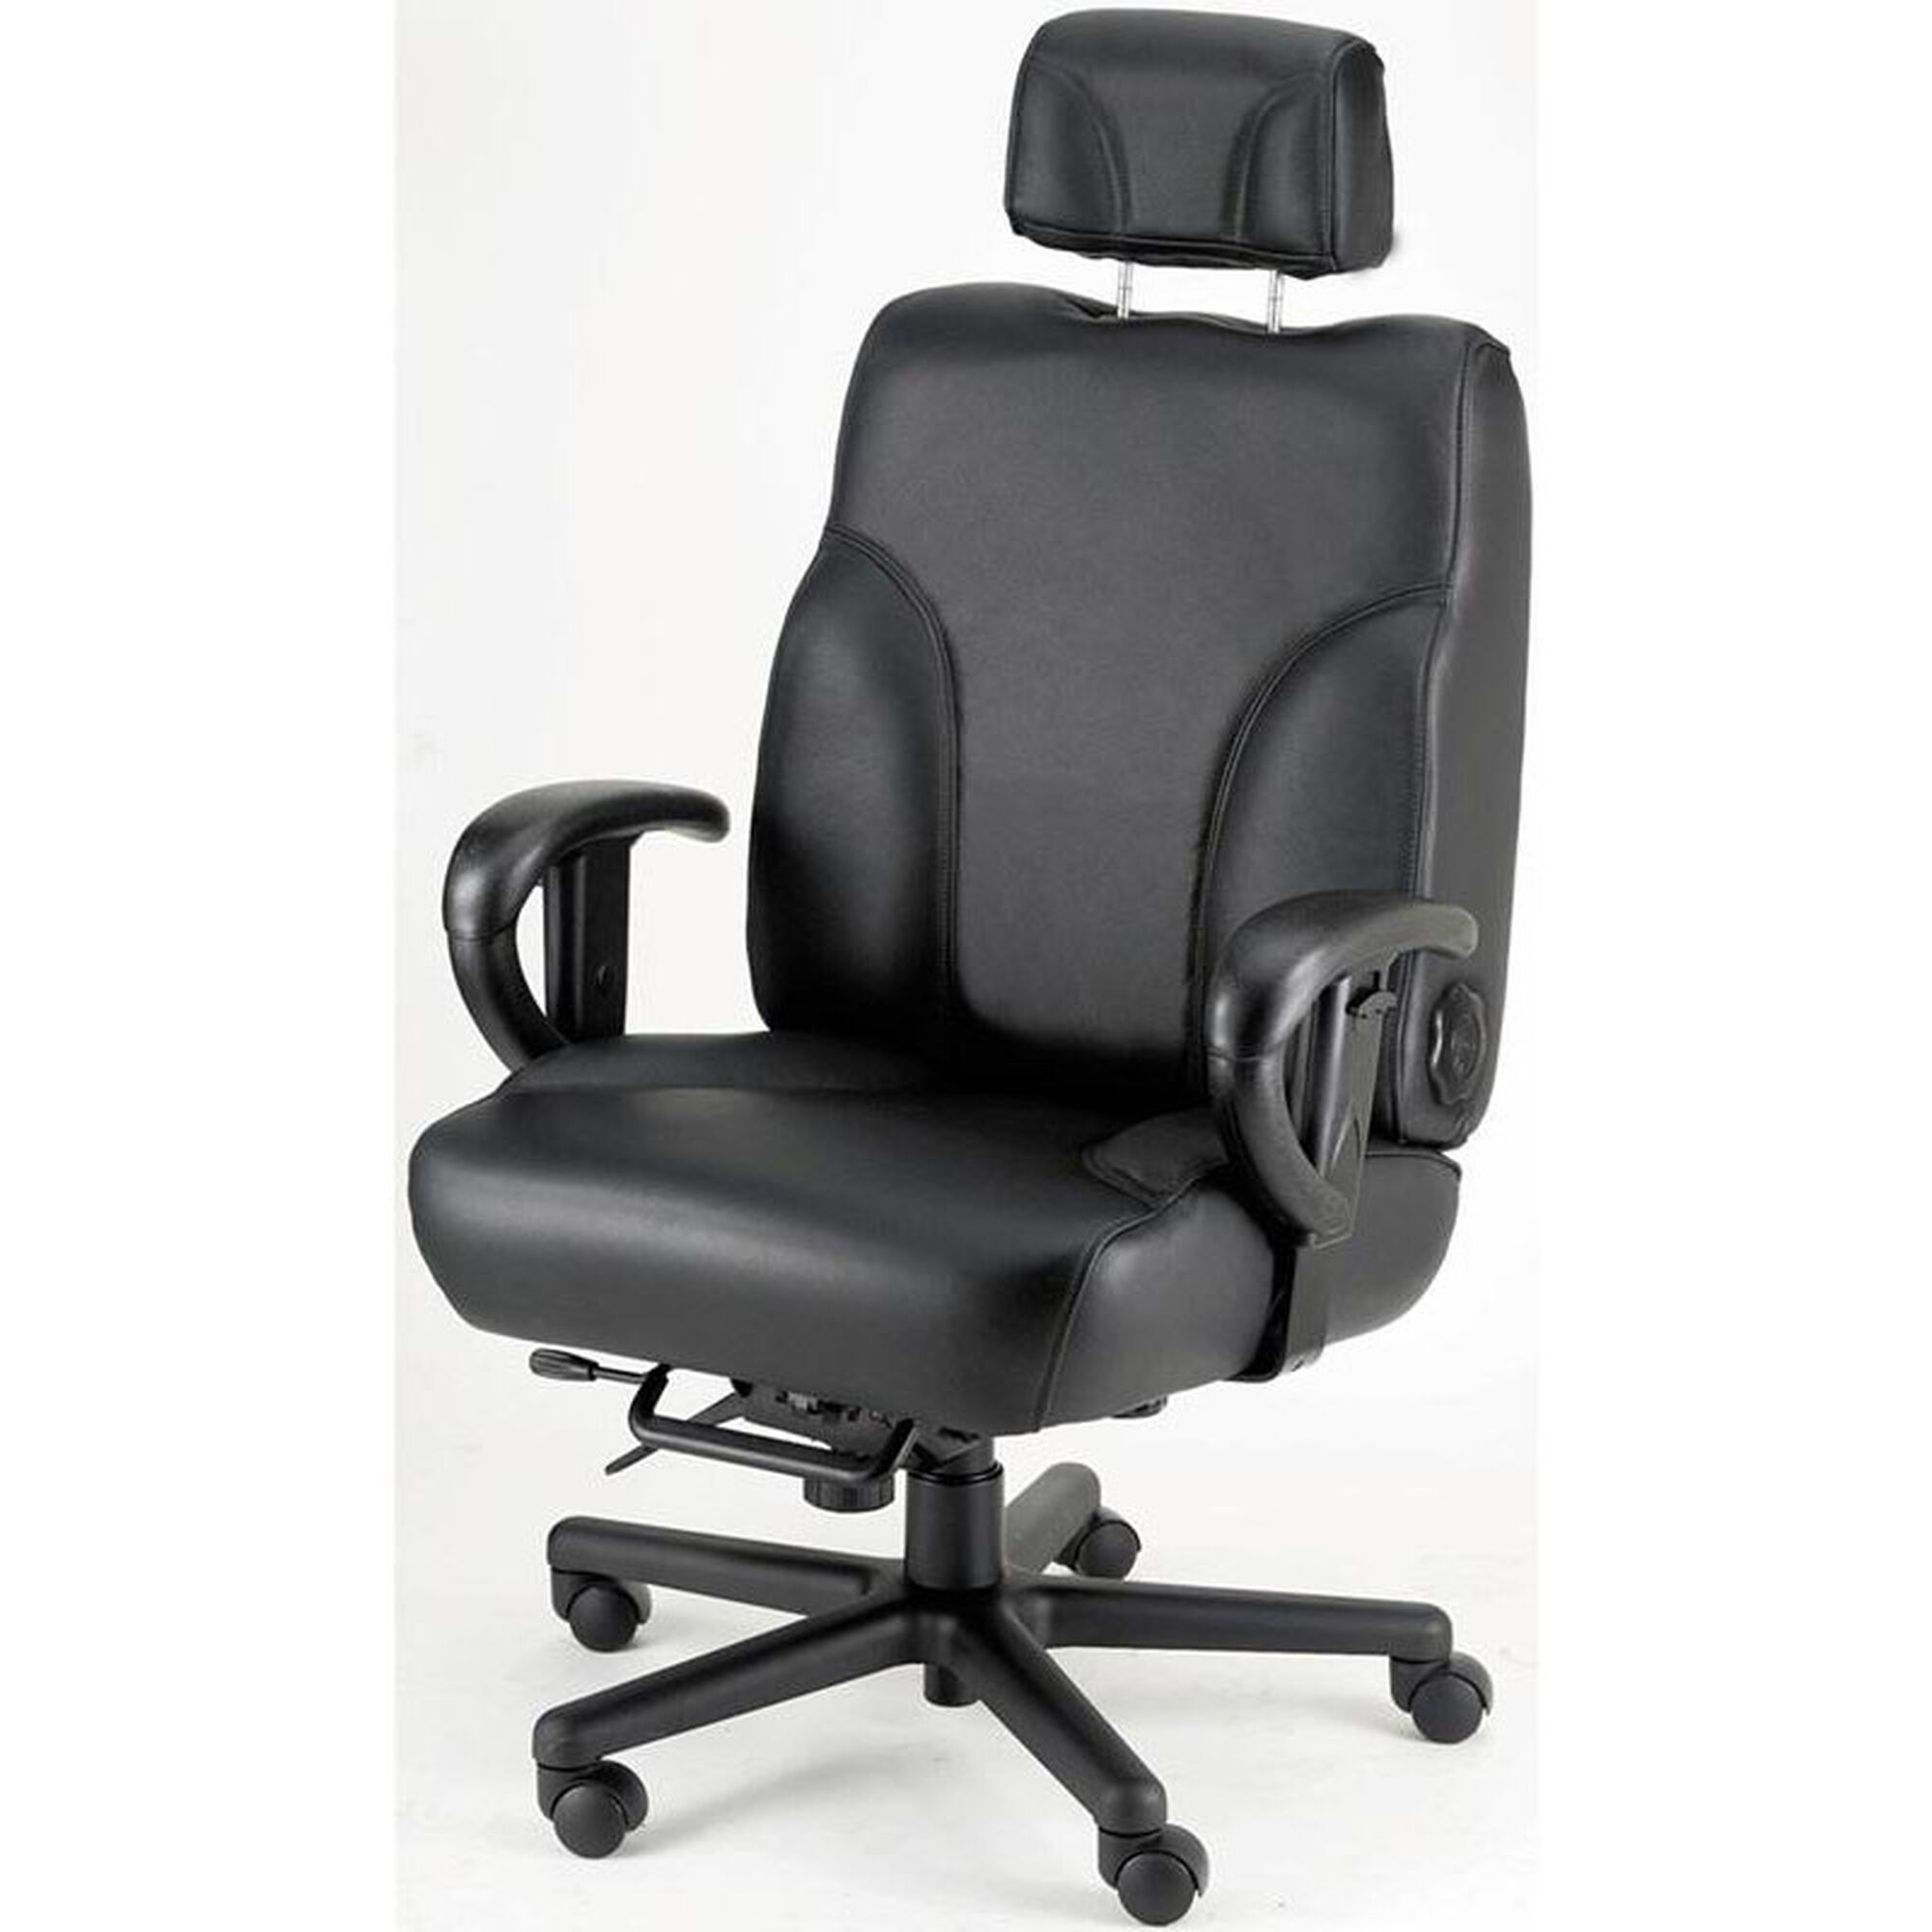 fabric office chairs with arms. Main Image Shown In LEATHER Option. This Chair Is Available Your Choice Of FABRIC Colours Listed Below. With Optional \u0027\u0027P\u0027\u0027 Arms. Fabric Office Chairs Arms E